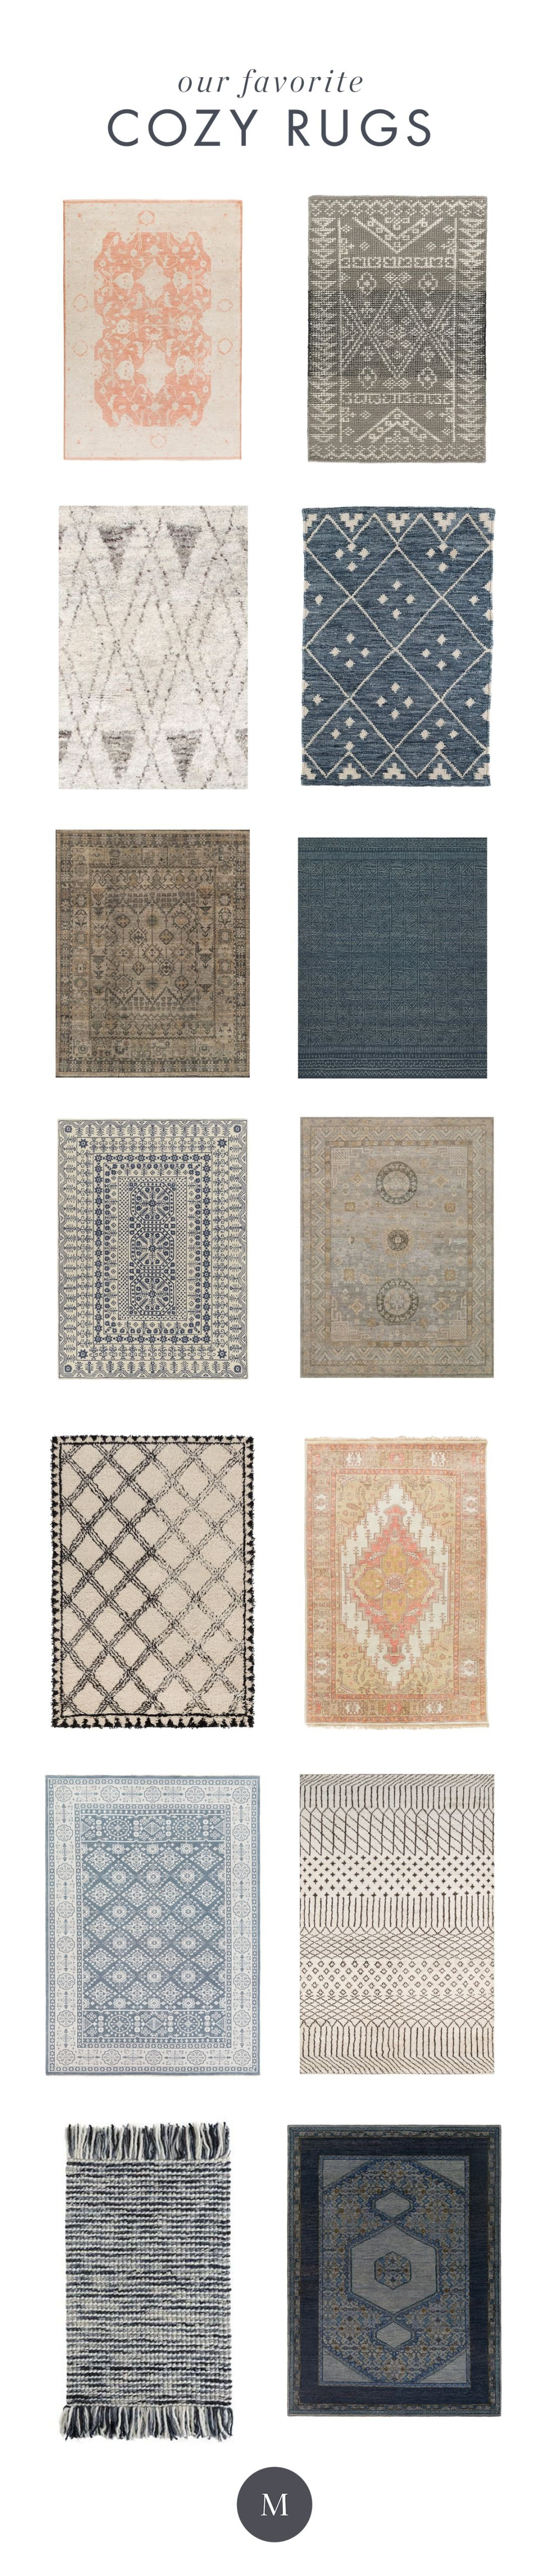 Our Favorite Cozy Rugs Again